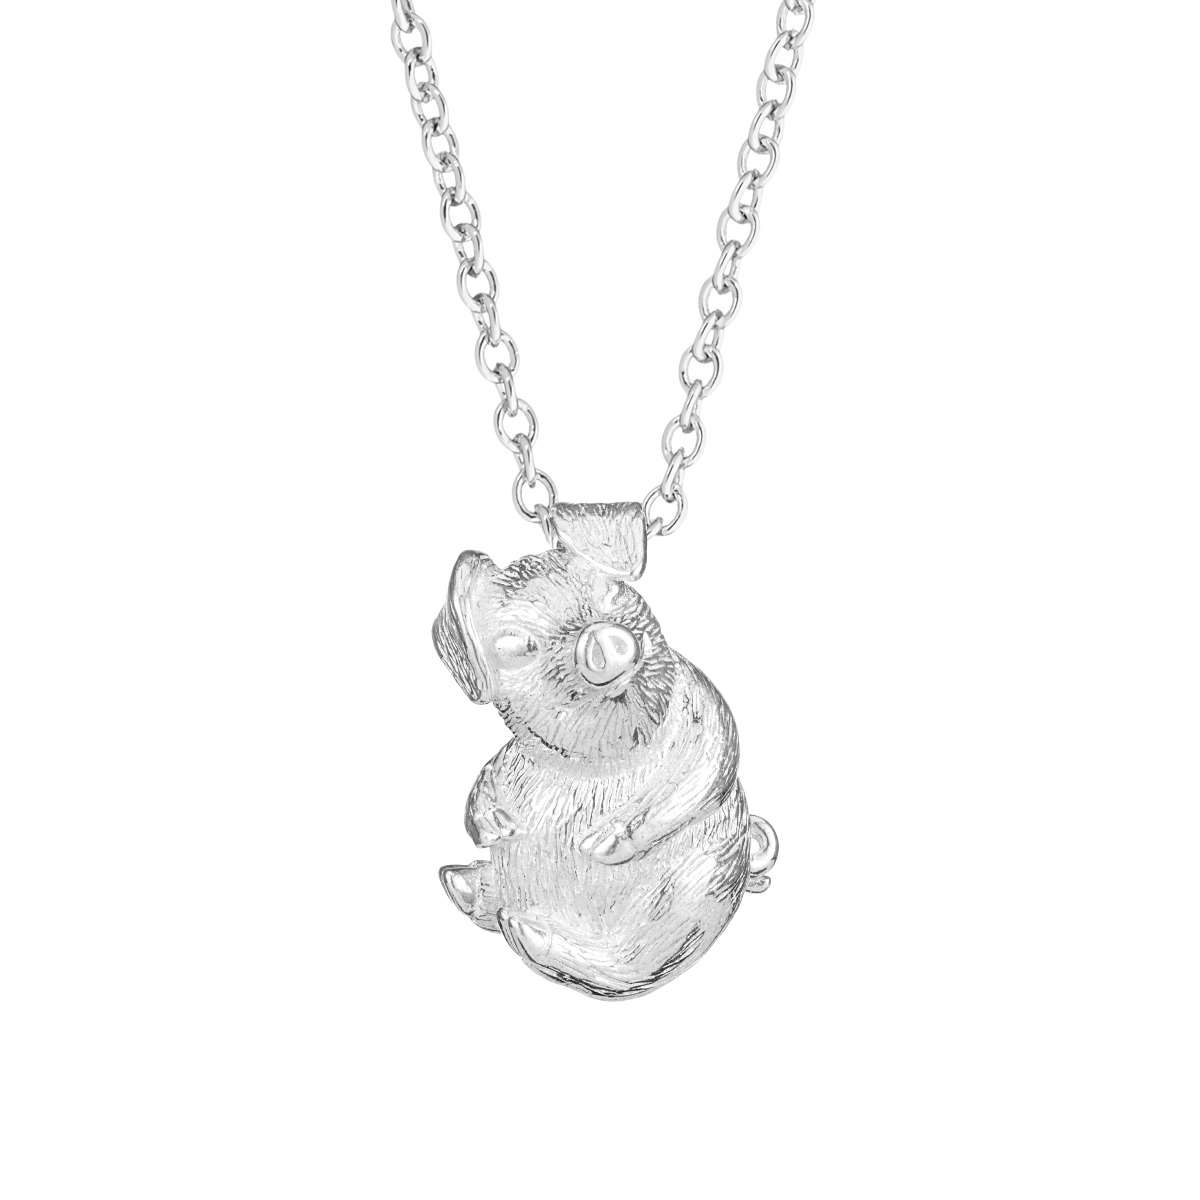 Chinese zodiac pendant necklace (pig)